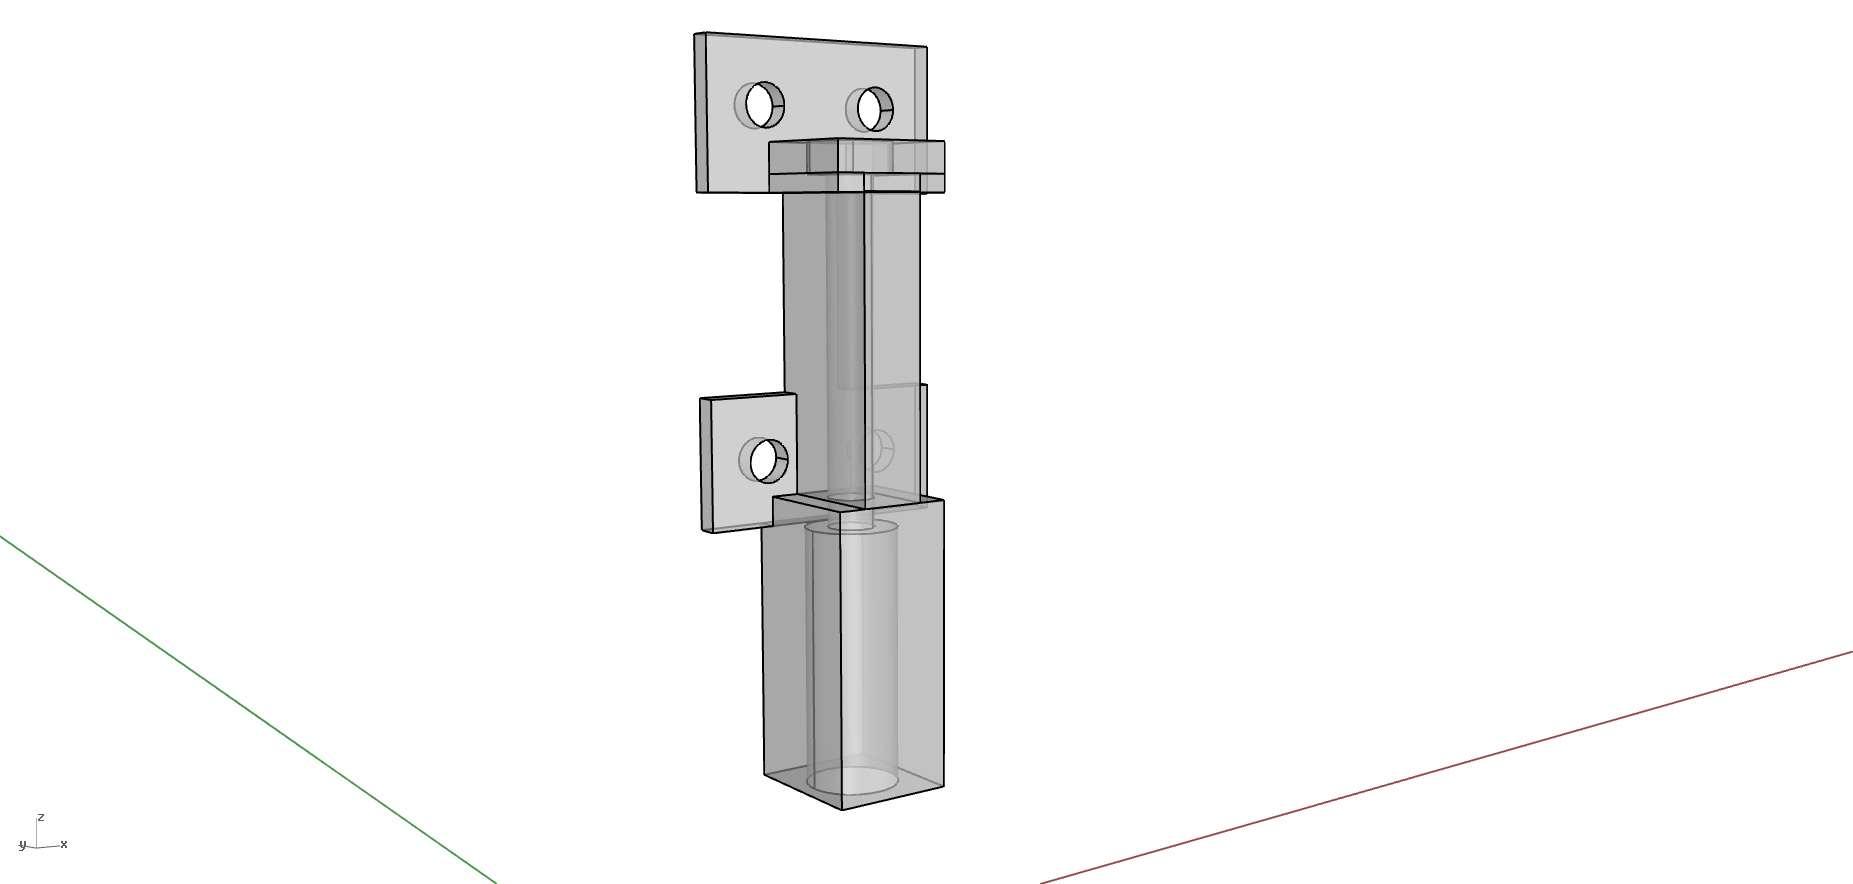 Picture of Machine: the CNC Gantry